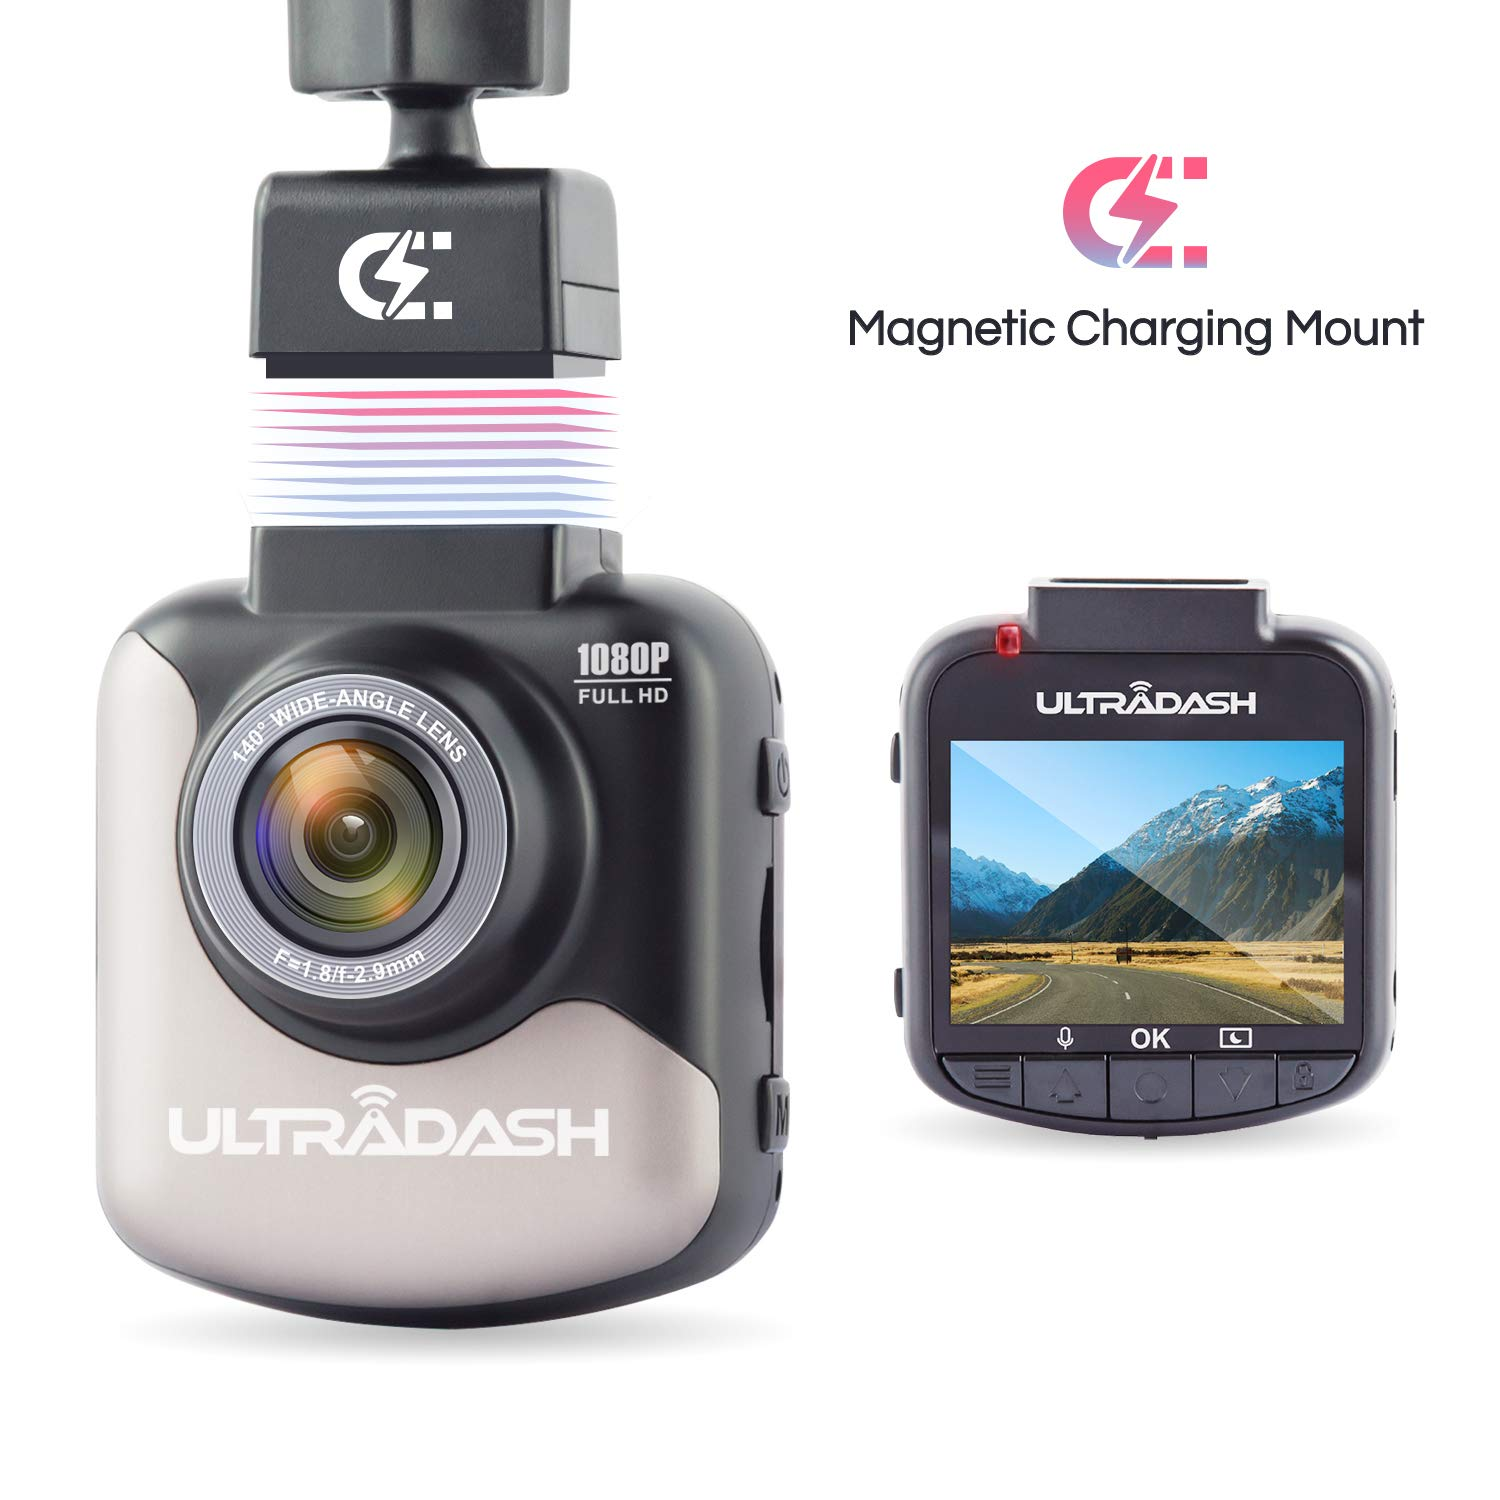 Dash Cam, UltraDash Full HD 1080P@30fps, Magnetic Charging Mount, HDR High-end Night Image Sensor, 6 Layers Glass F1.8 140 Degree Wide Angle Lens, G-Sensor, 2 Inch LCD, Super Capacitor, Loop Recording